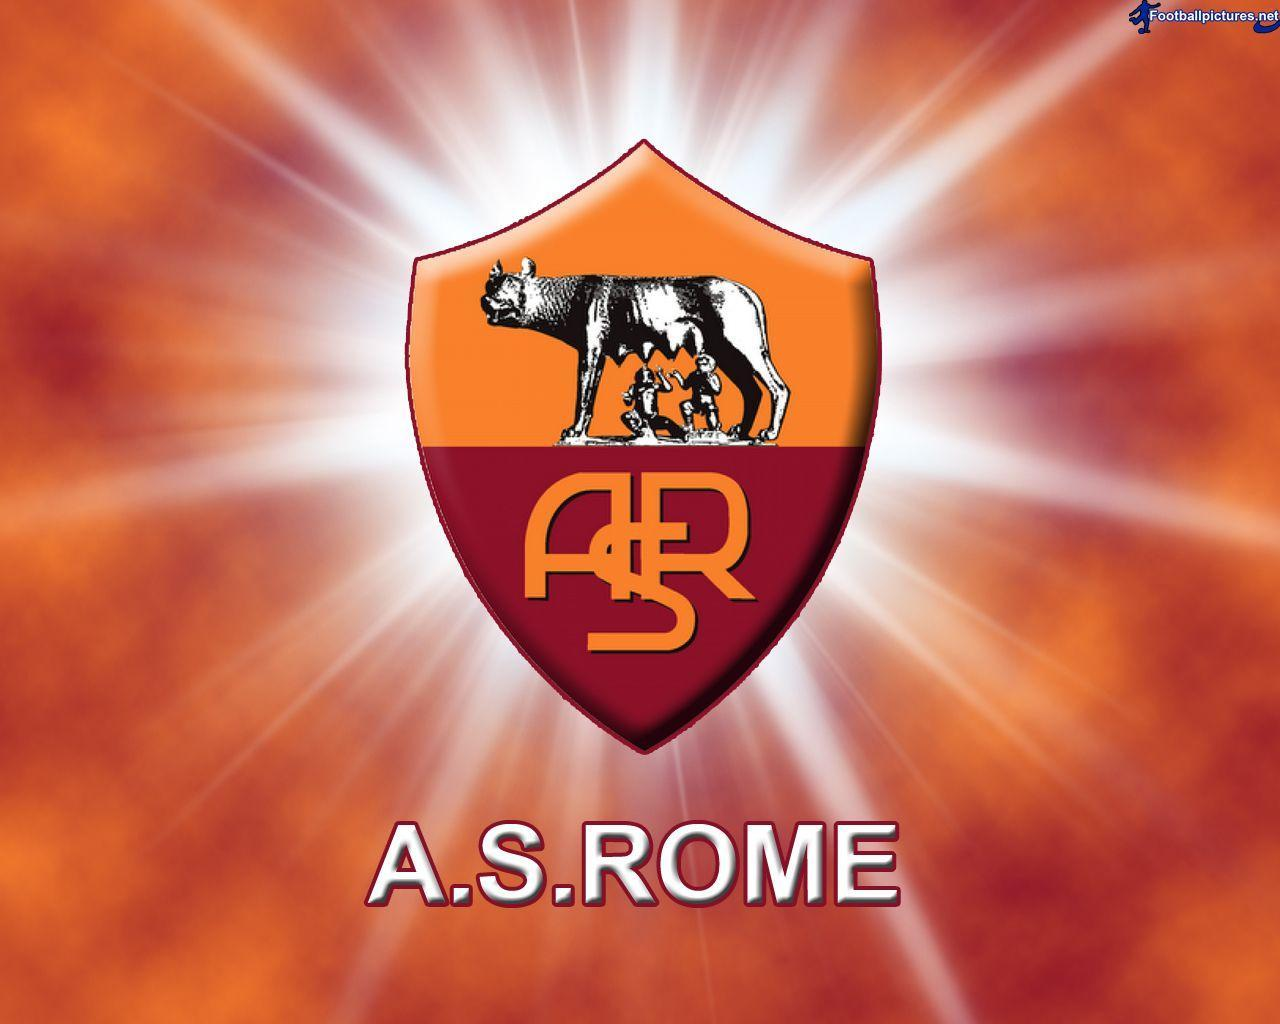 As Roma pictures, Football Wallpapers and Photos